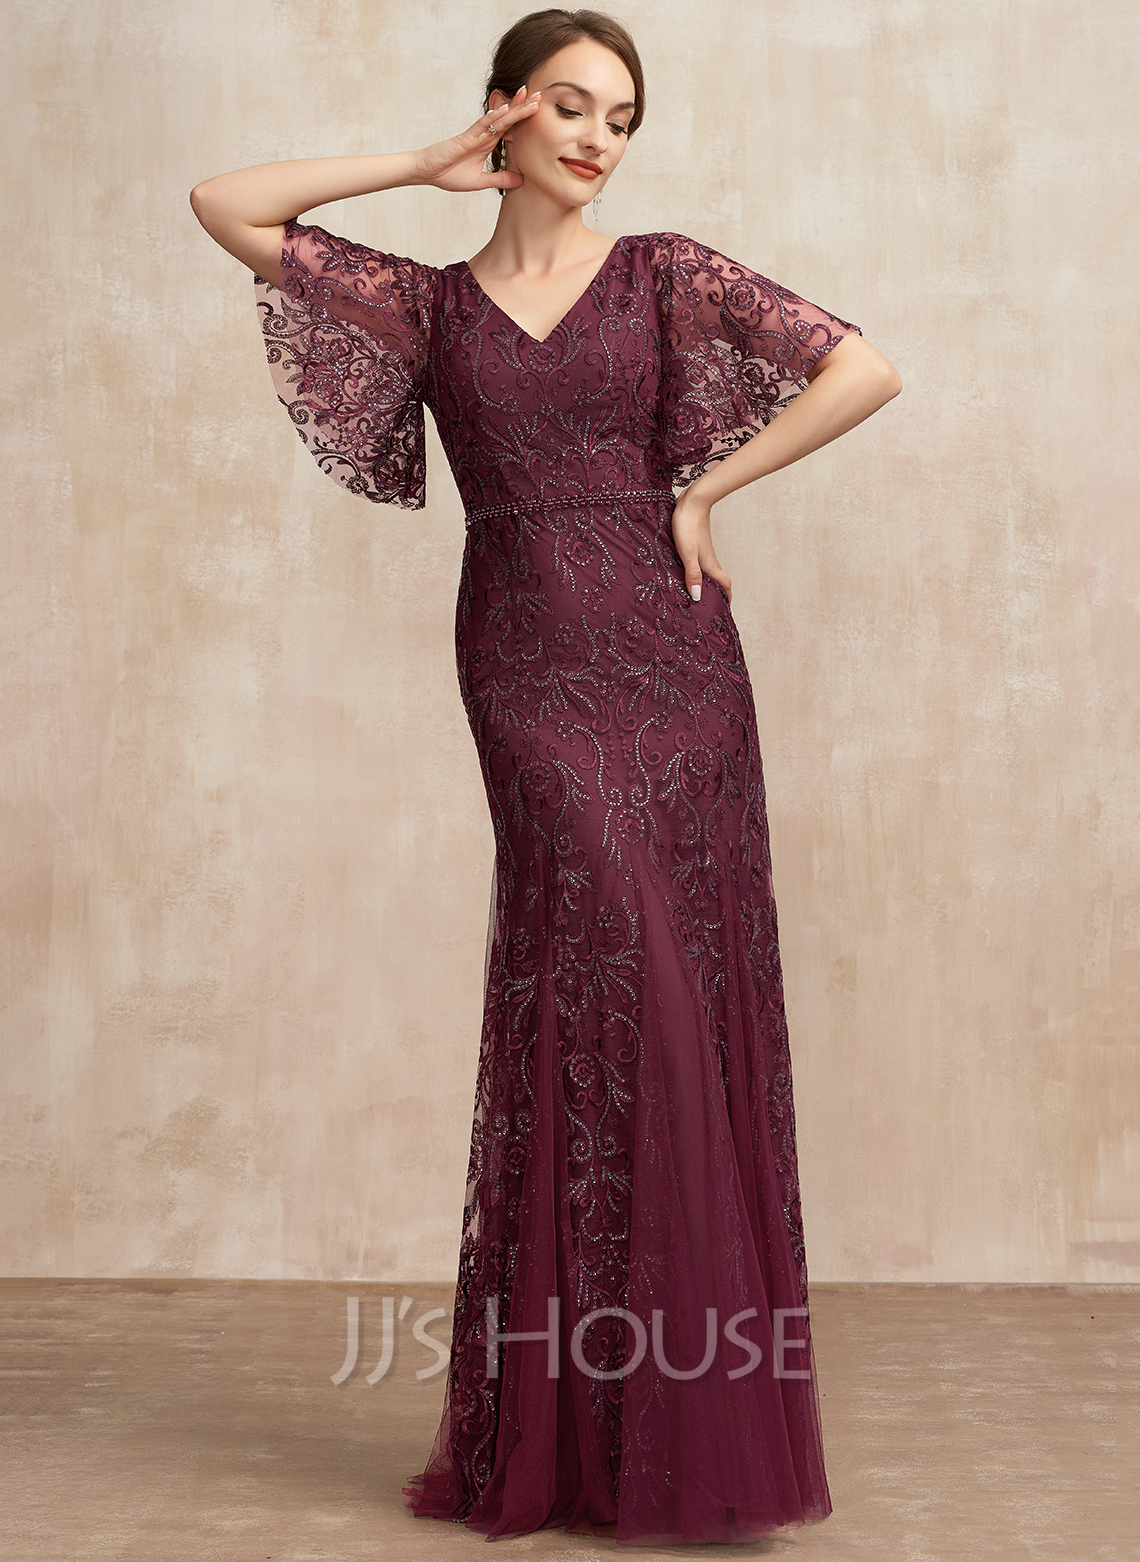 Trumpet/Mermaid V-neck Floor-Length Tulle Lace Mother of the Bride Dress With Beading Sequins